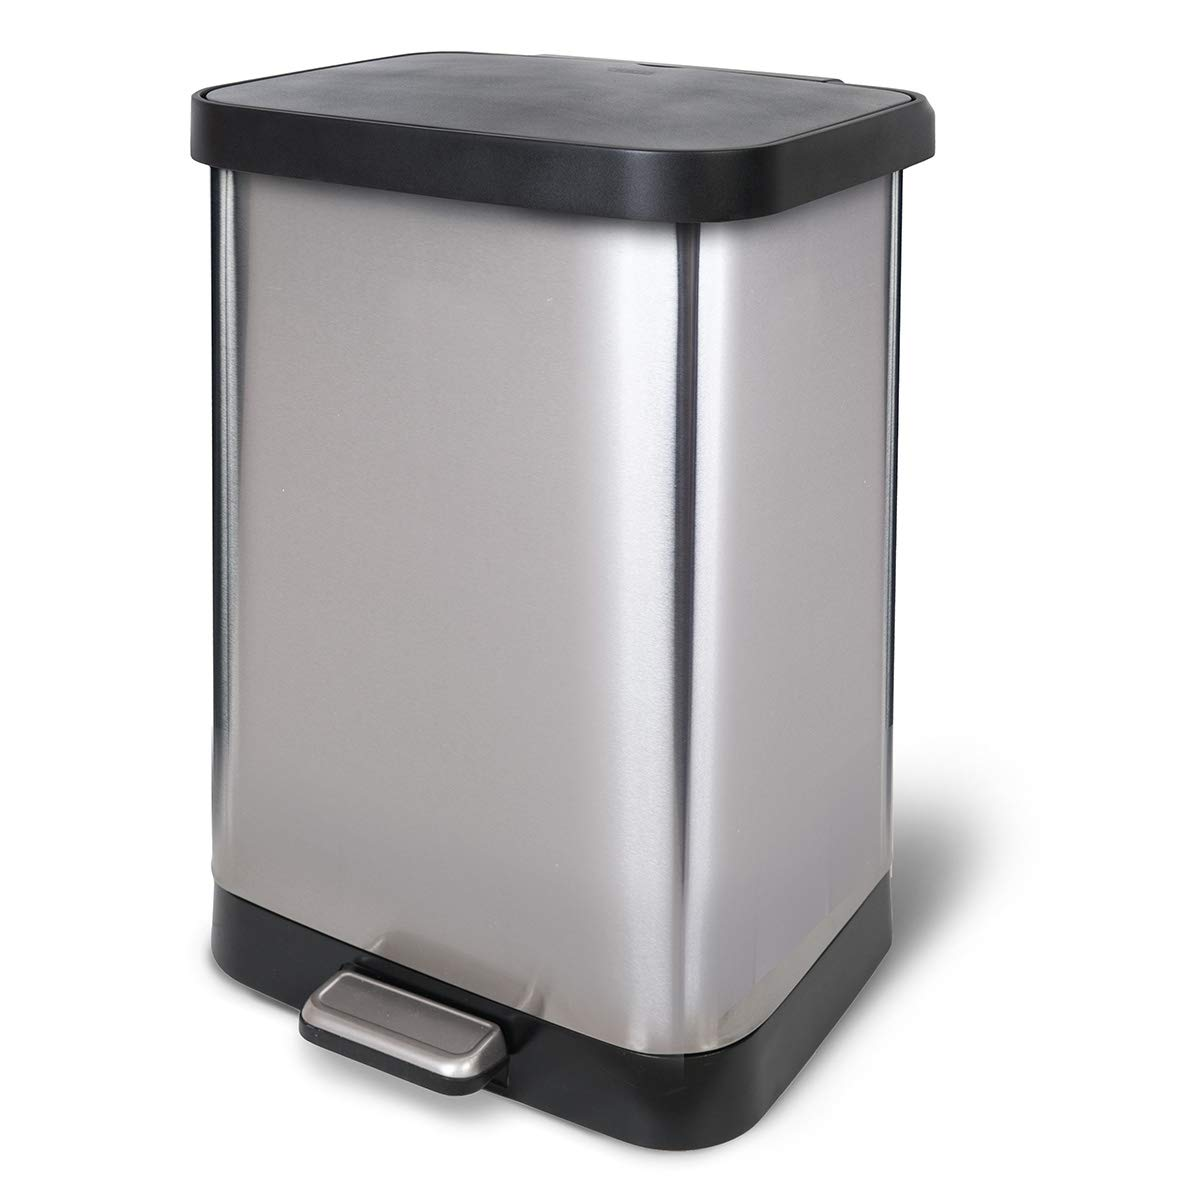 Glad GLD-74506 Stainless Steel Step Trash Can with Clorox Odor Protection | Large Metal Kitchen Garbage Bin with Soft Clos...